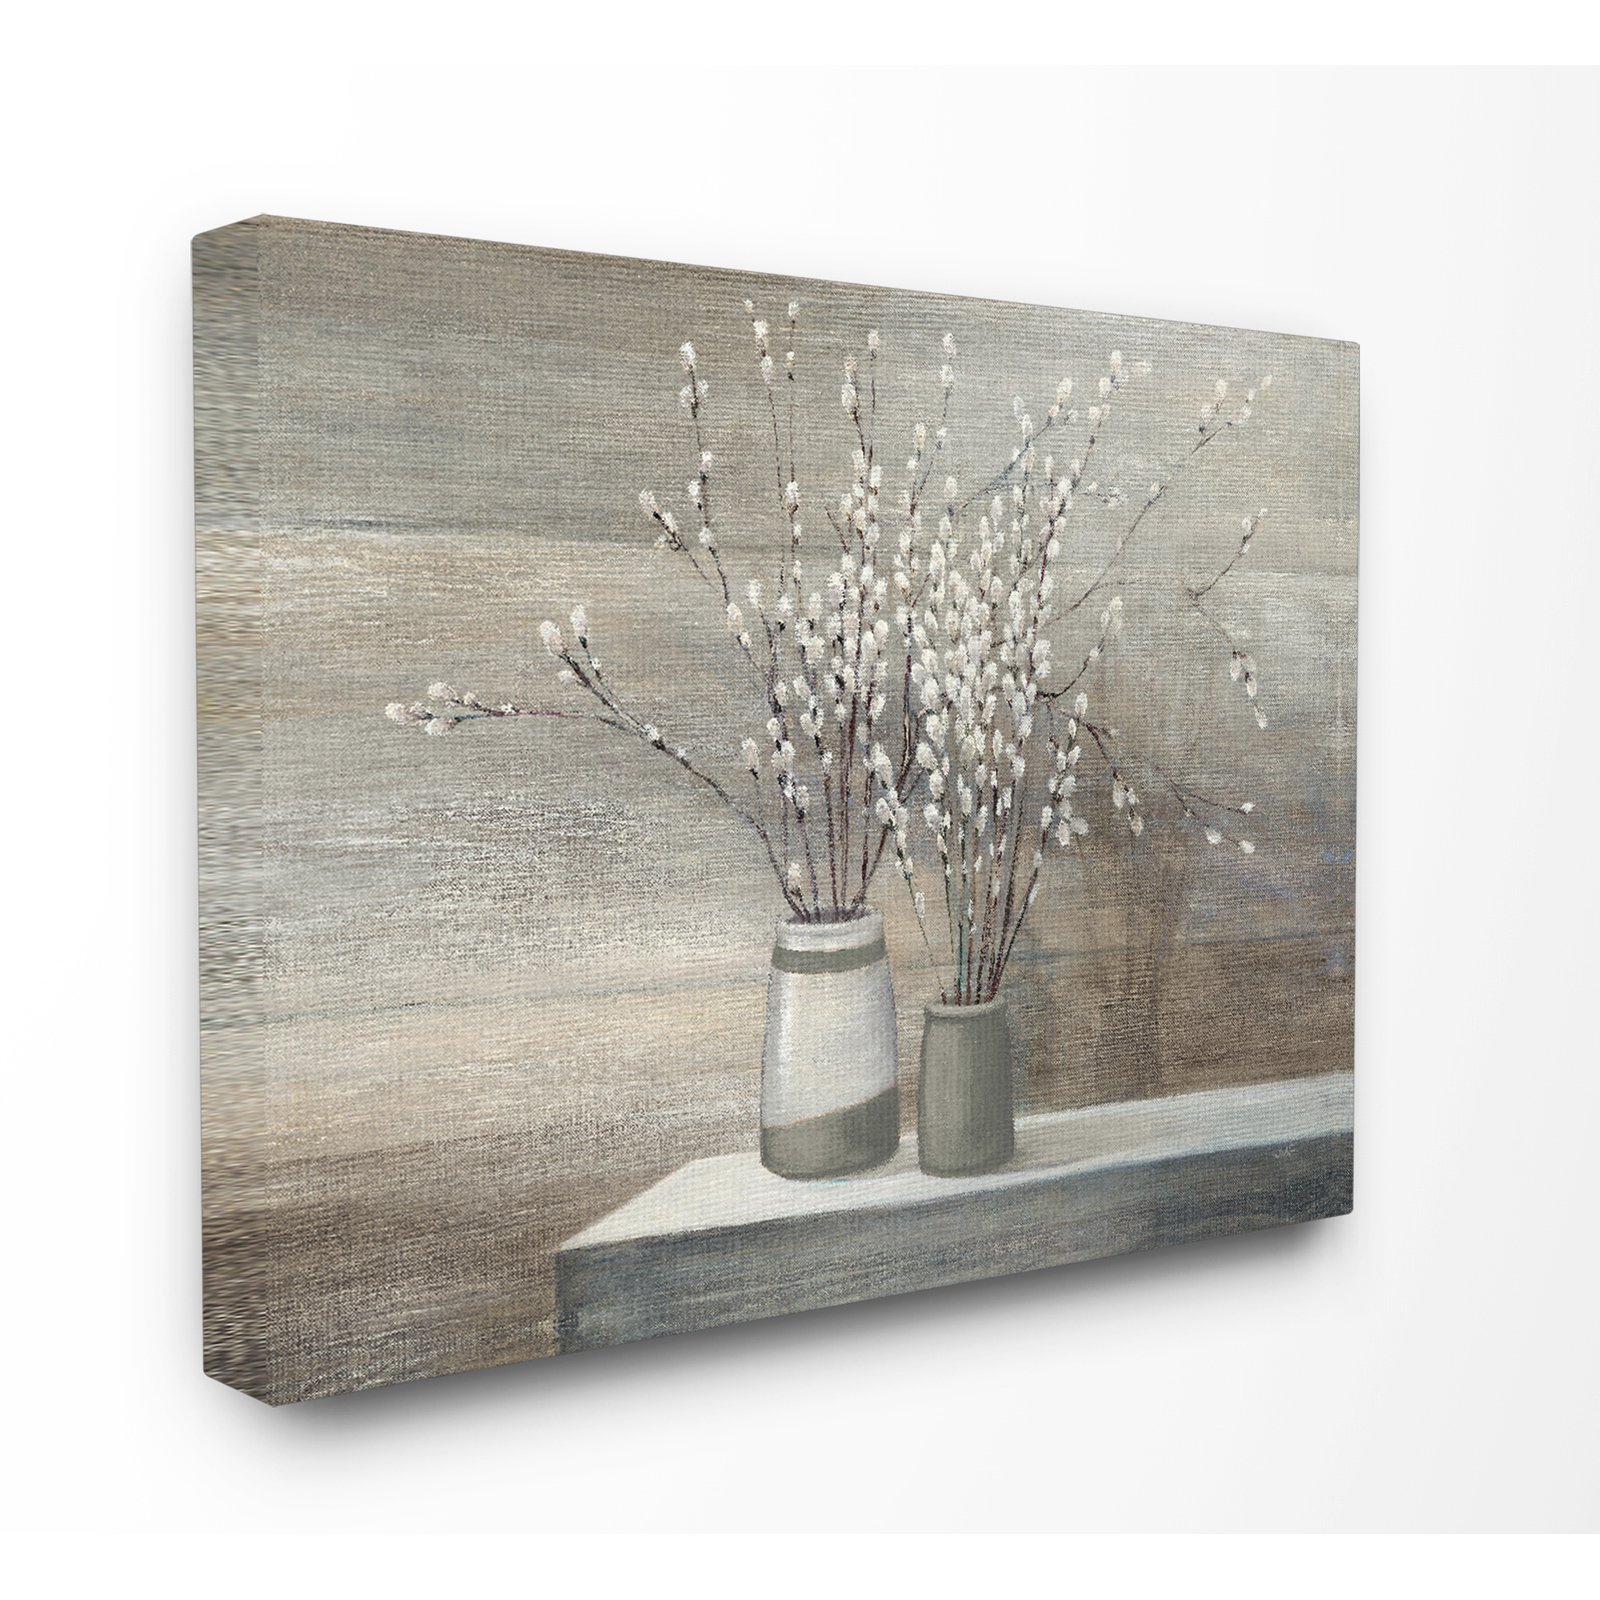 The Stupell Home Decor Collection Willow Still Life Canvas Intended For Vase And Bowl Wall Decor By Alcott Hill (View 16 of 30)